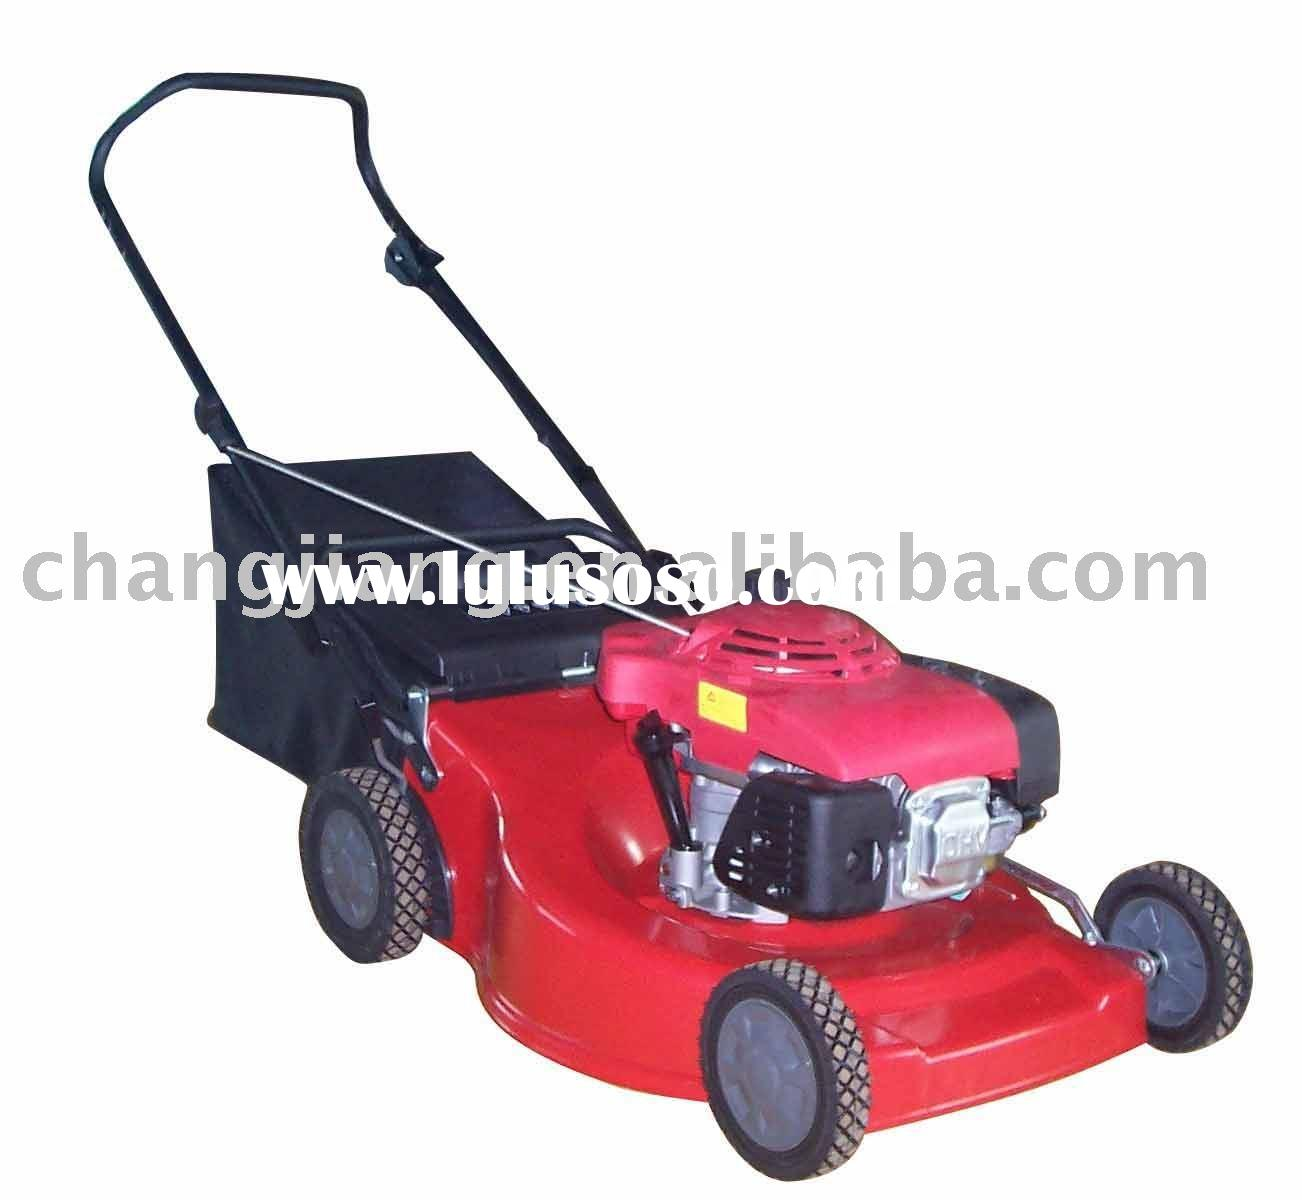 """21"""" hand push gasoline lawn mower with bag grass cutter and garden tools (CJ21TZSH55)"""